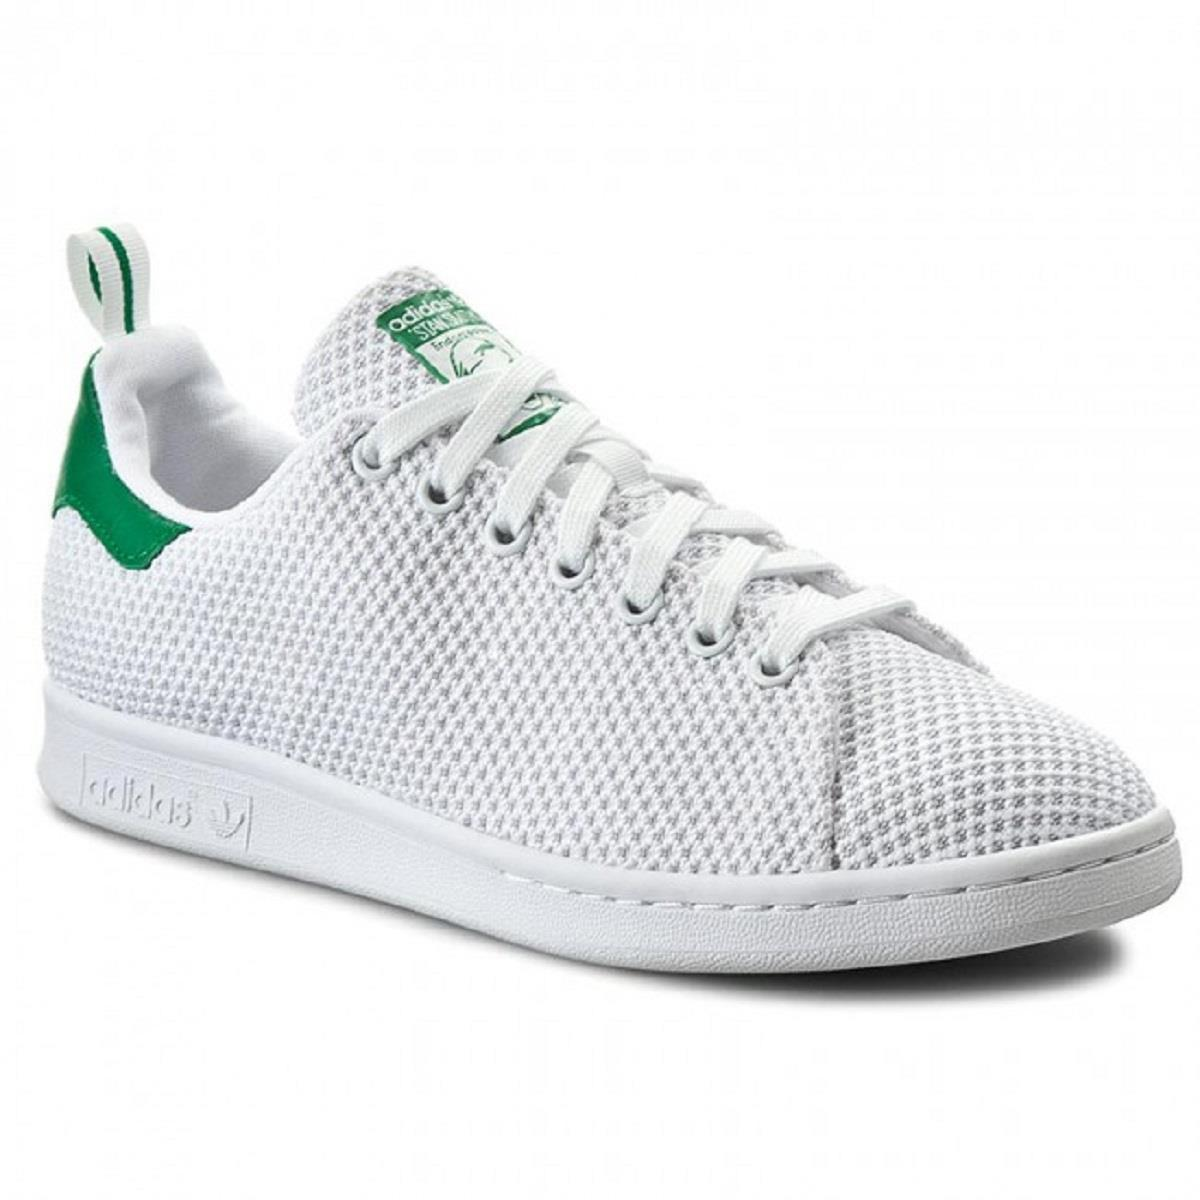 Acquista 2 OFF QUALSIASI stan smith 47 CASE E OTTIENI IL 70